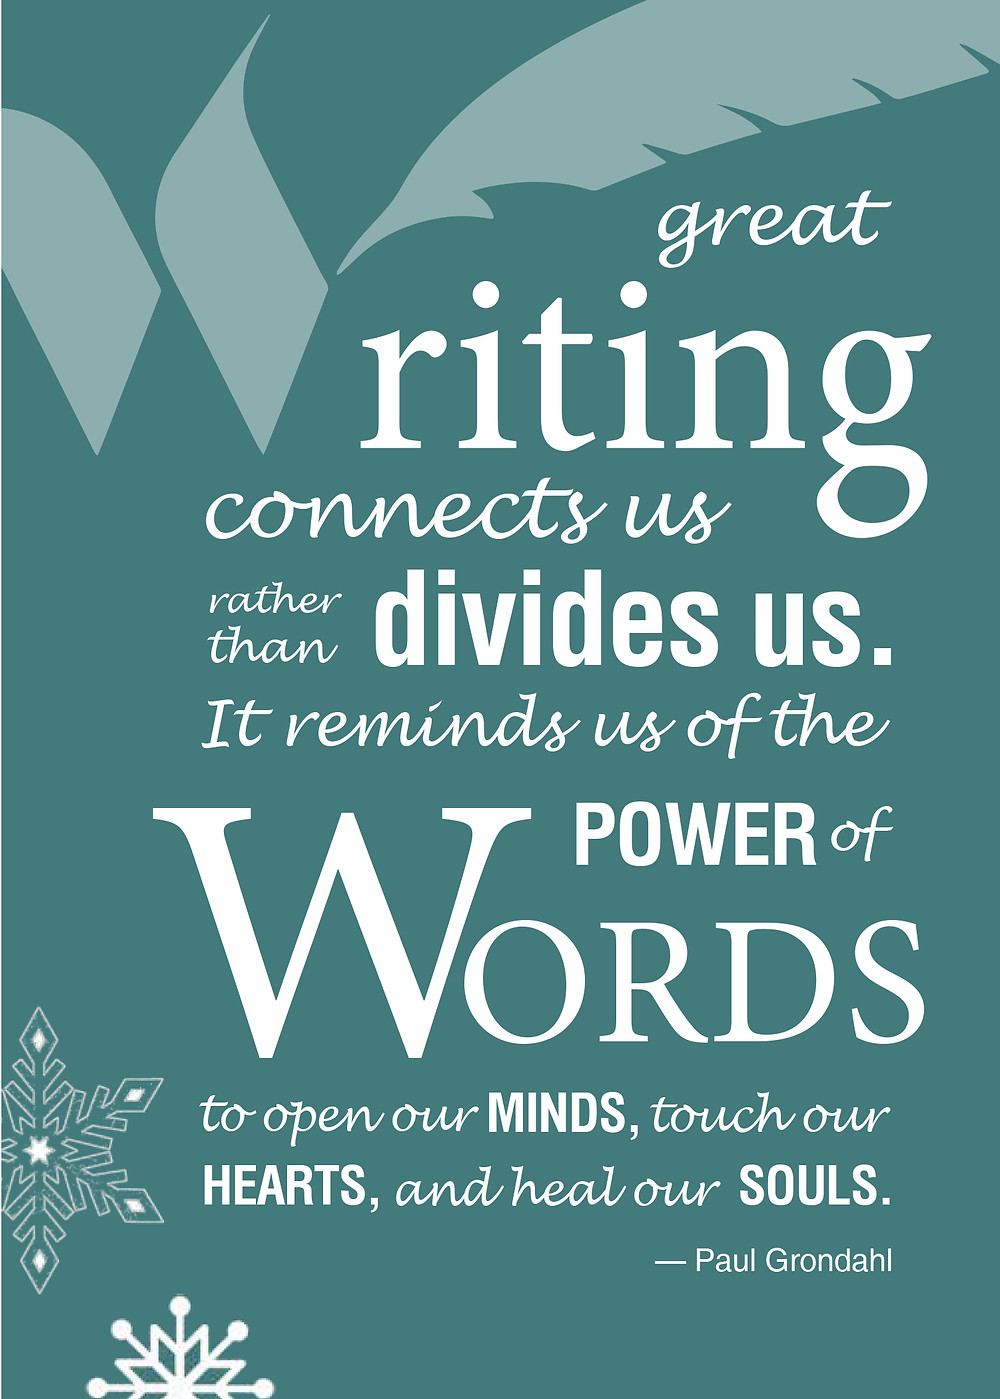 """""""Great writing connects us rather than divides us. It reminds us of the power of words to open our minds, touch our hearts, and heal our souls."""" Paul Grondahl, Executive Director, NYS Writers Institute"""